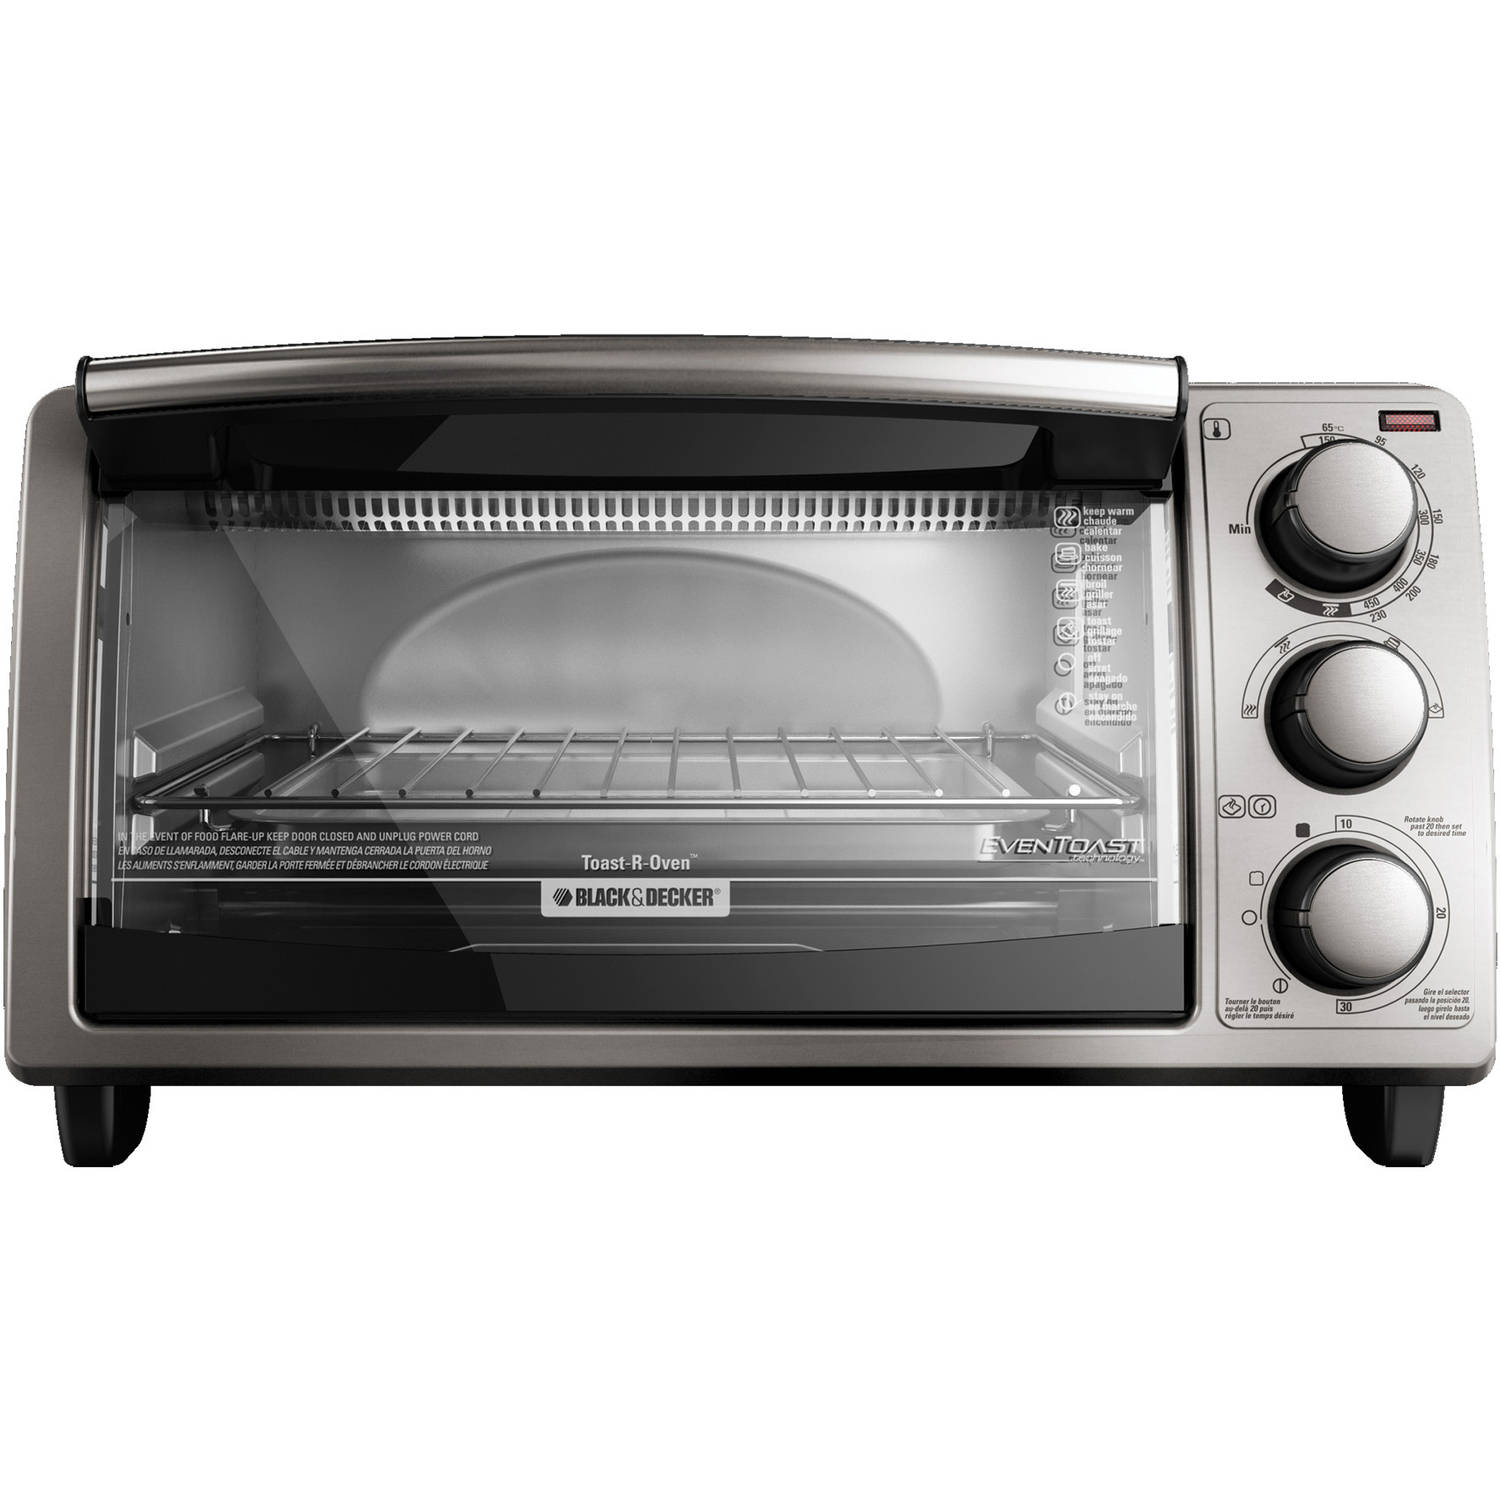 BLACK+DECKER 4-Slice Toaster Oven, Silver, TO1373SSD | eBay